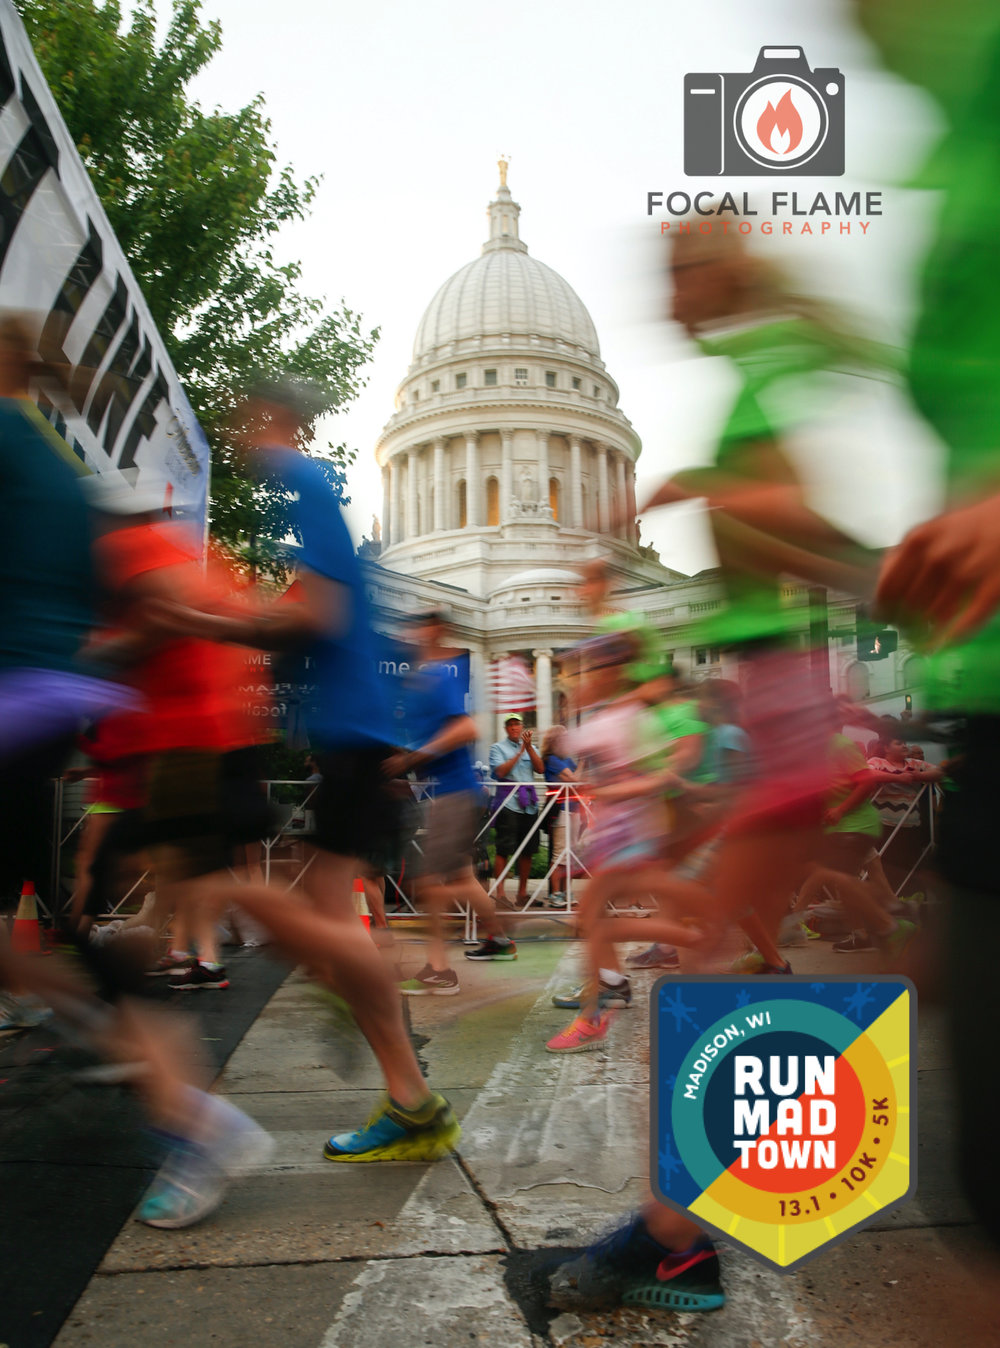 Run Madtown is a vibrant celebration of summer in Madison, Wisconsin. Photo (c) 2016 Focal Flame Photography | Credit: Larry Iles